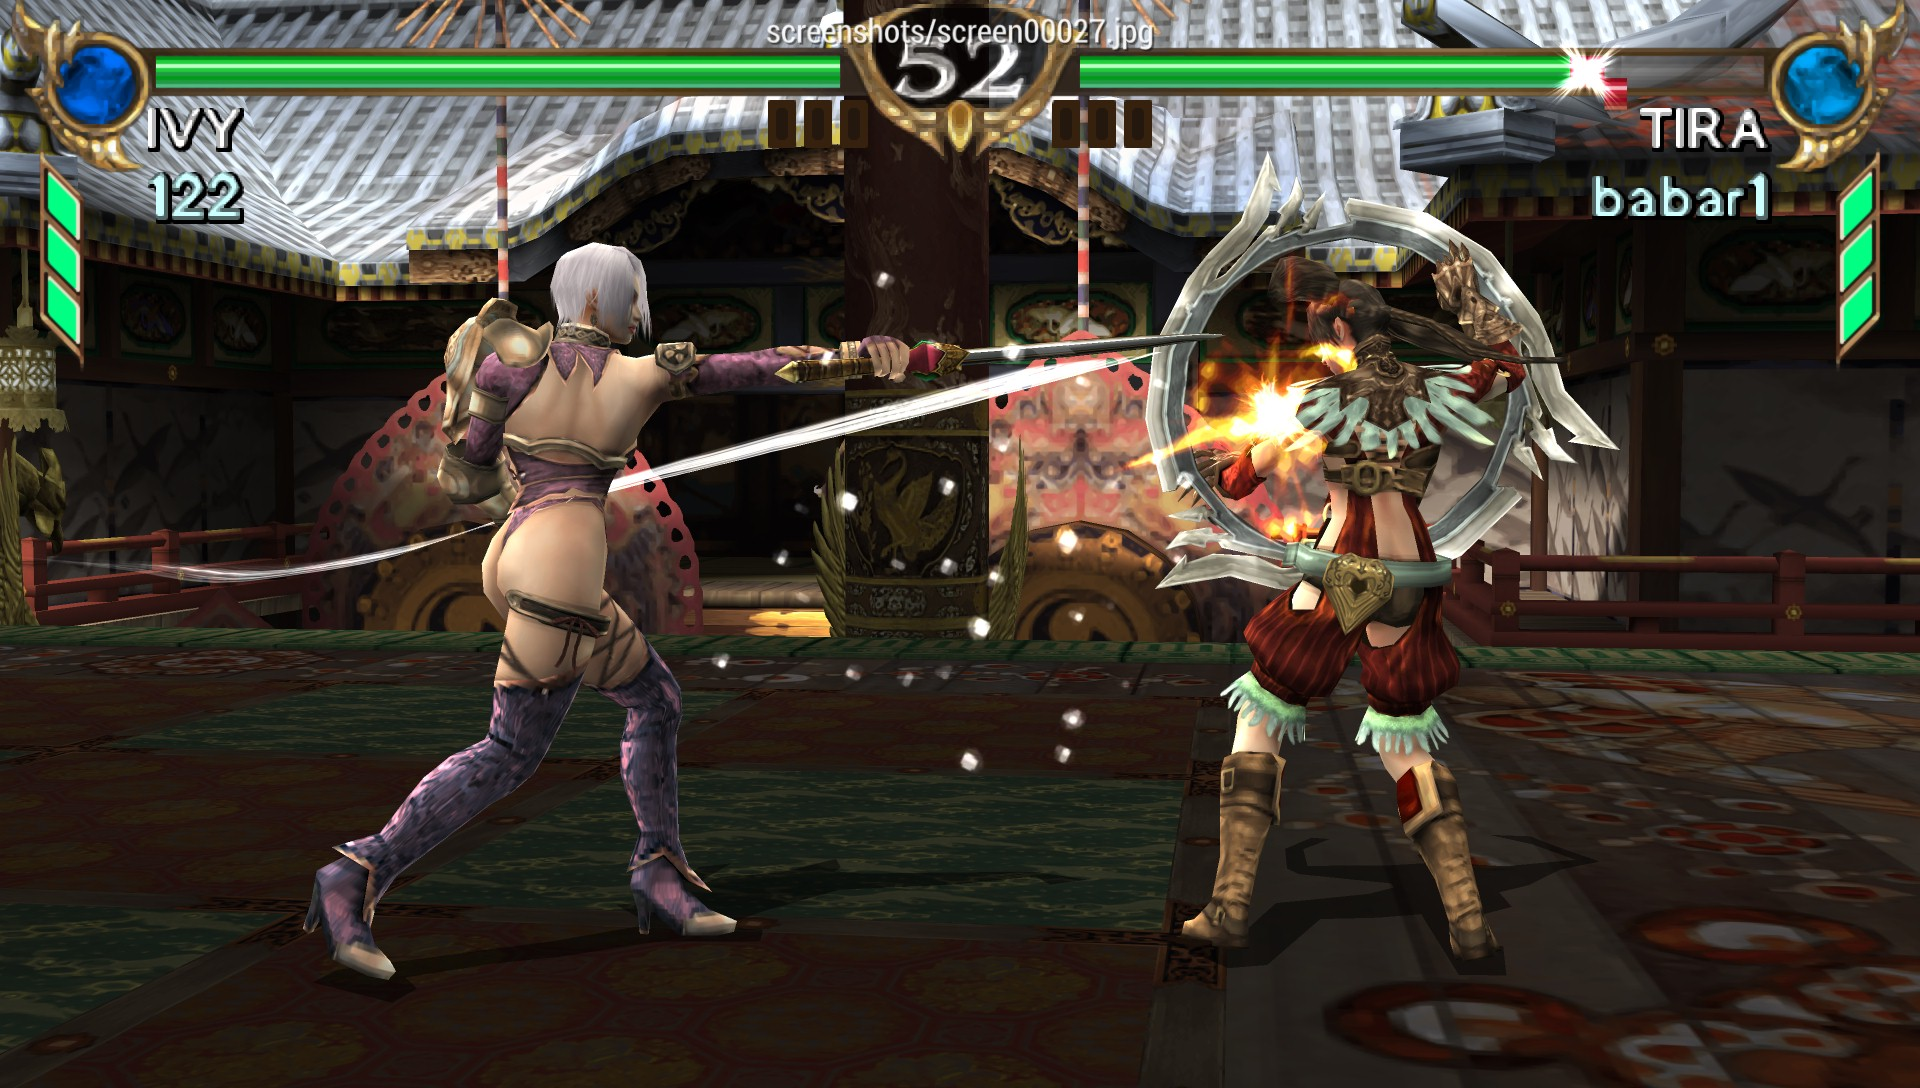 PPSSPP: PSP emulator for Android, iOS, Windows, Linux